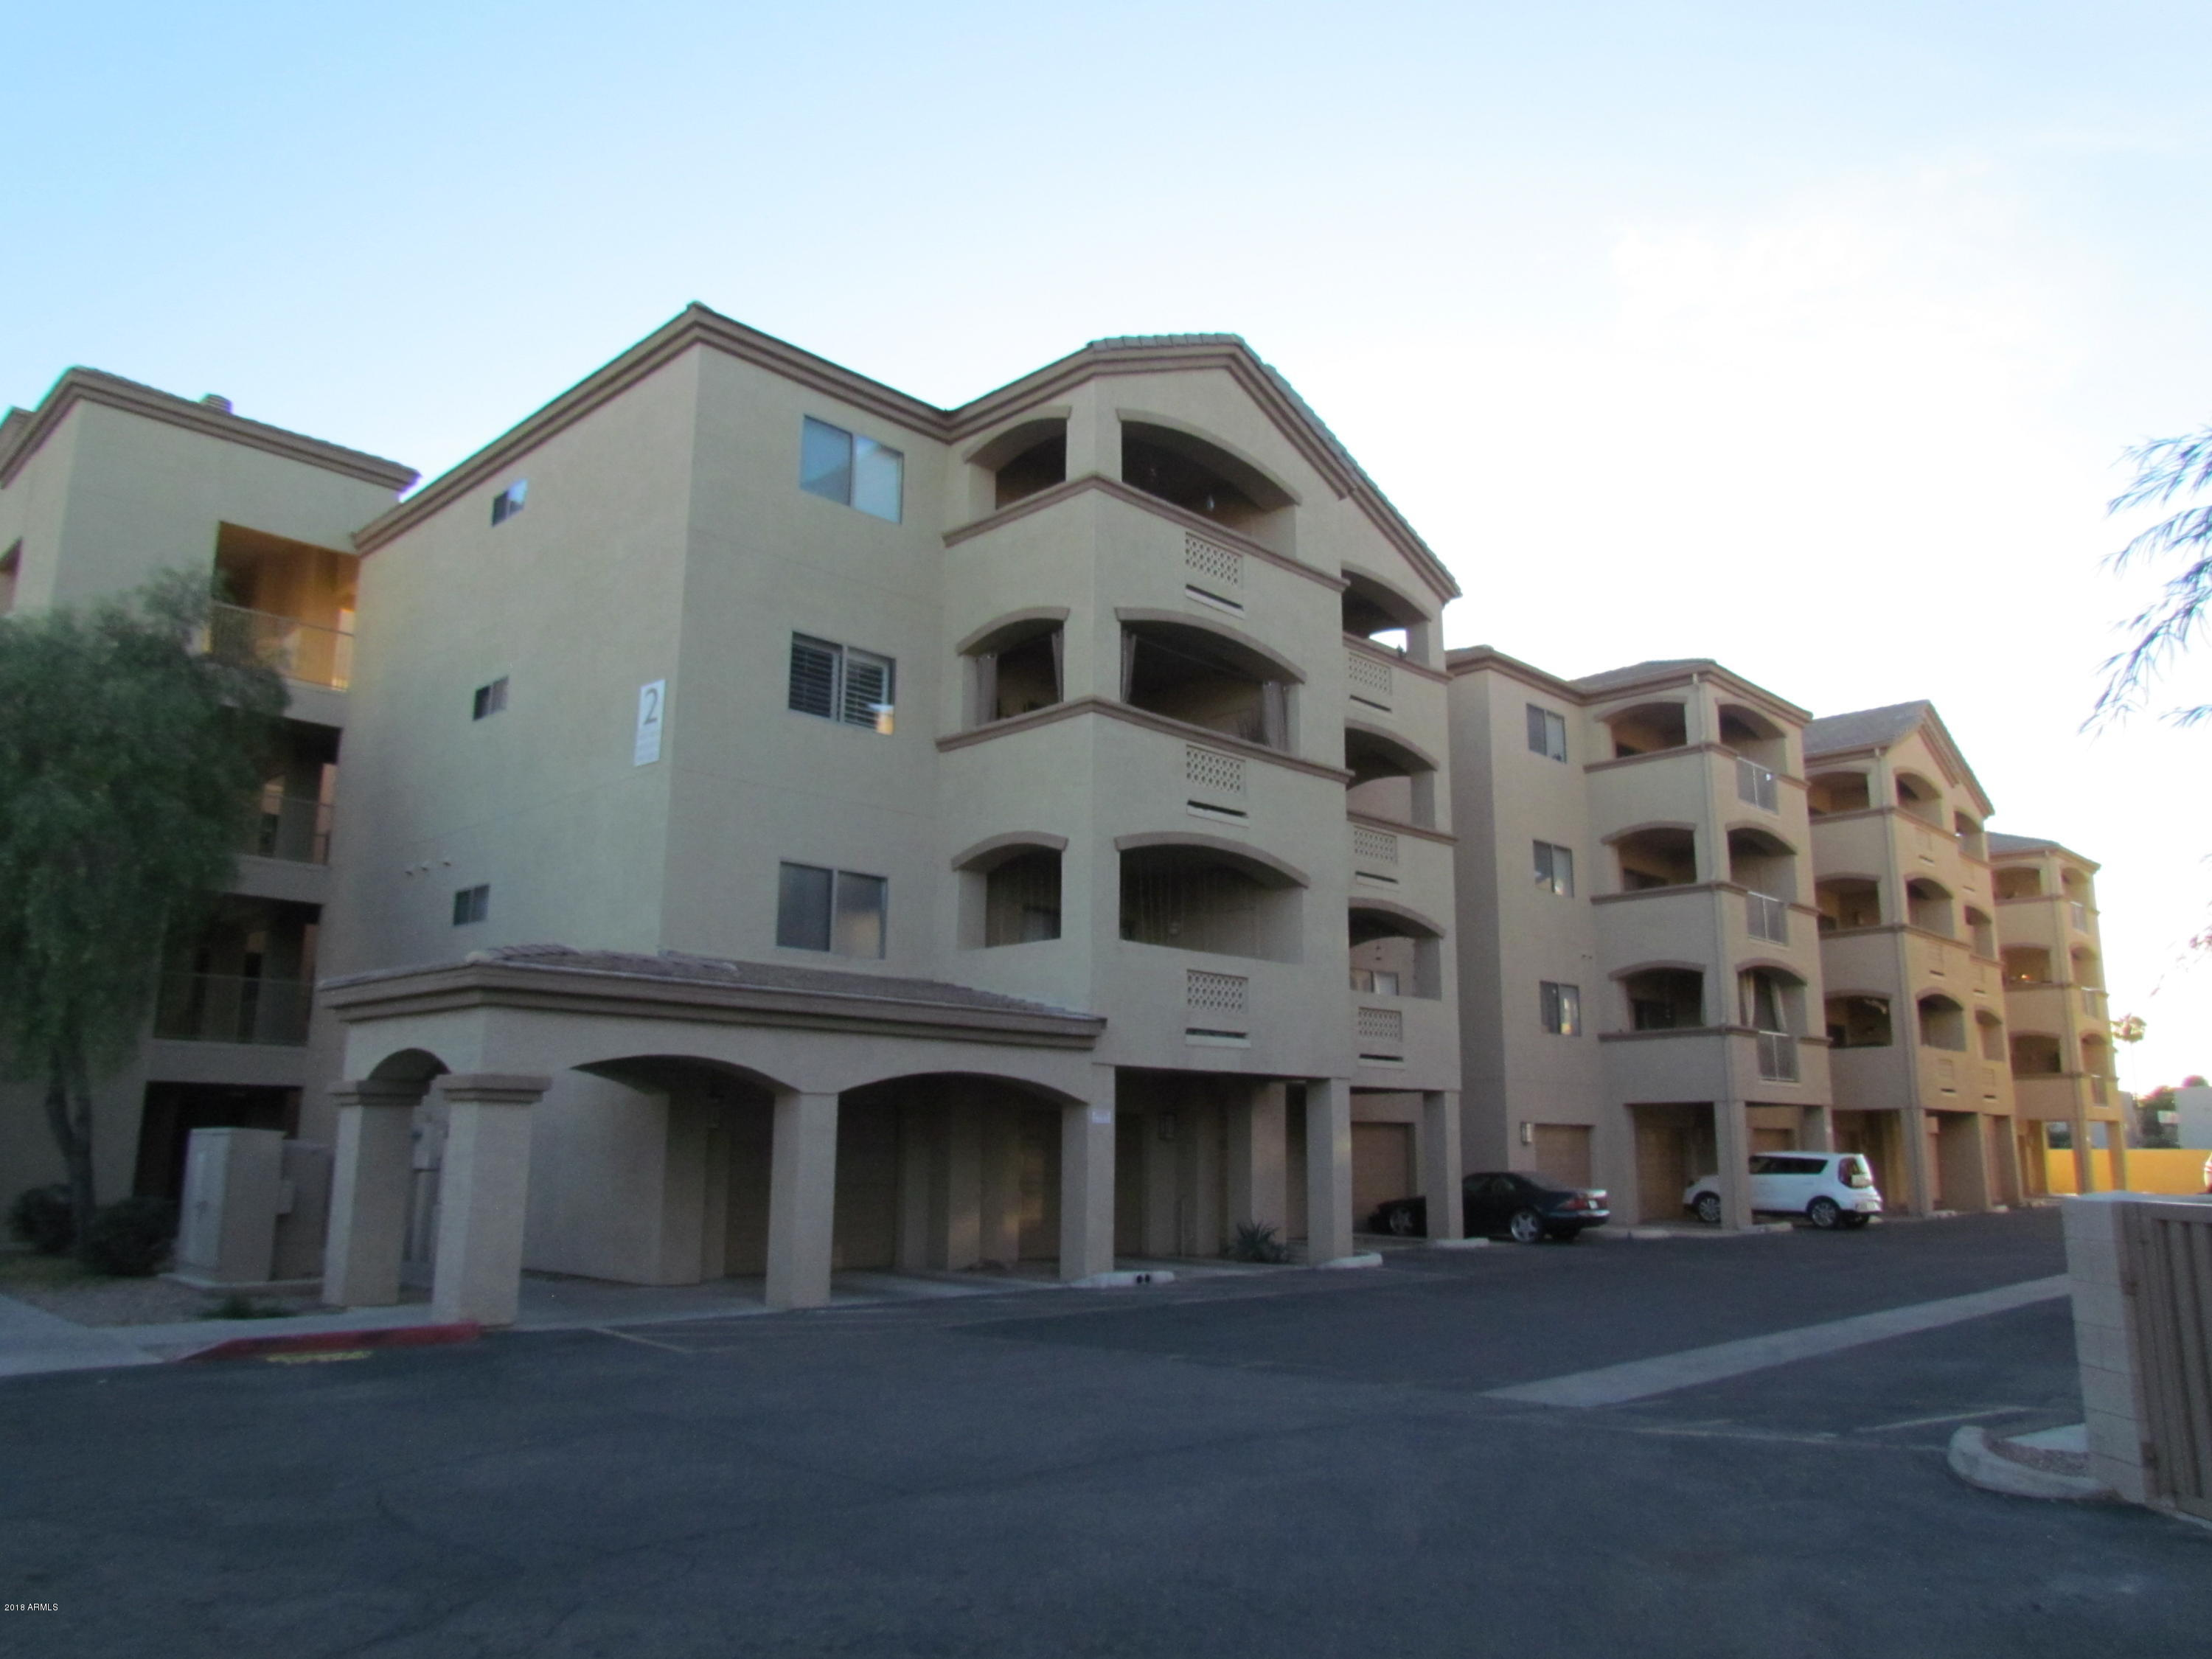 920 E DEVONSHIRE Avenue, #2009, Phoenix, 85014 - SOLD LISTING, MLS #  5846982 | Better Homes and Gardens BloomTree Realty